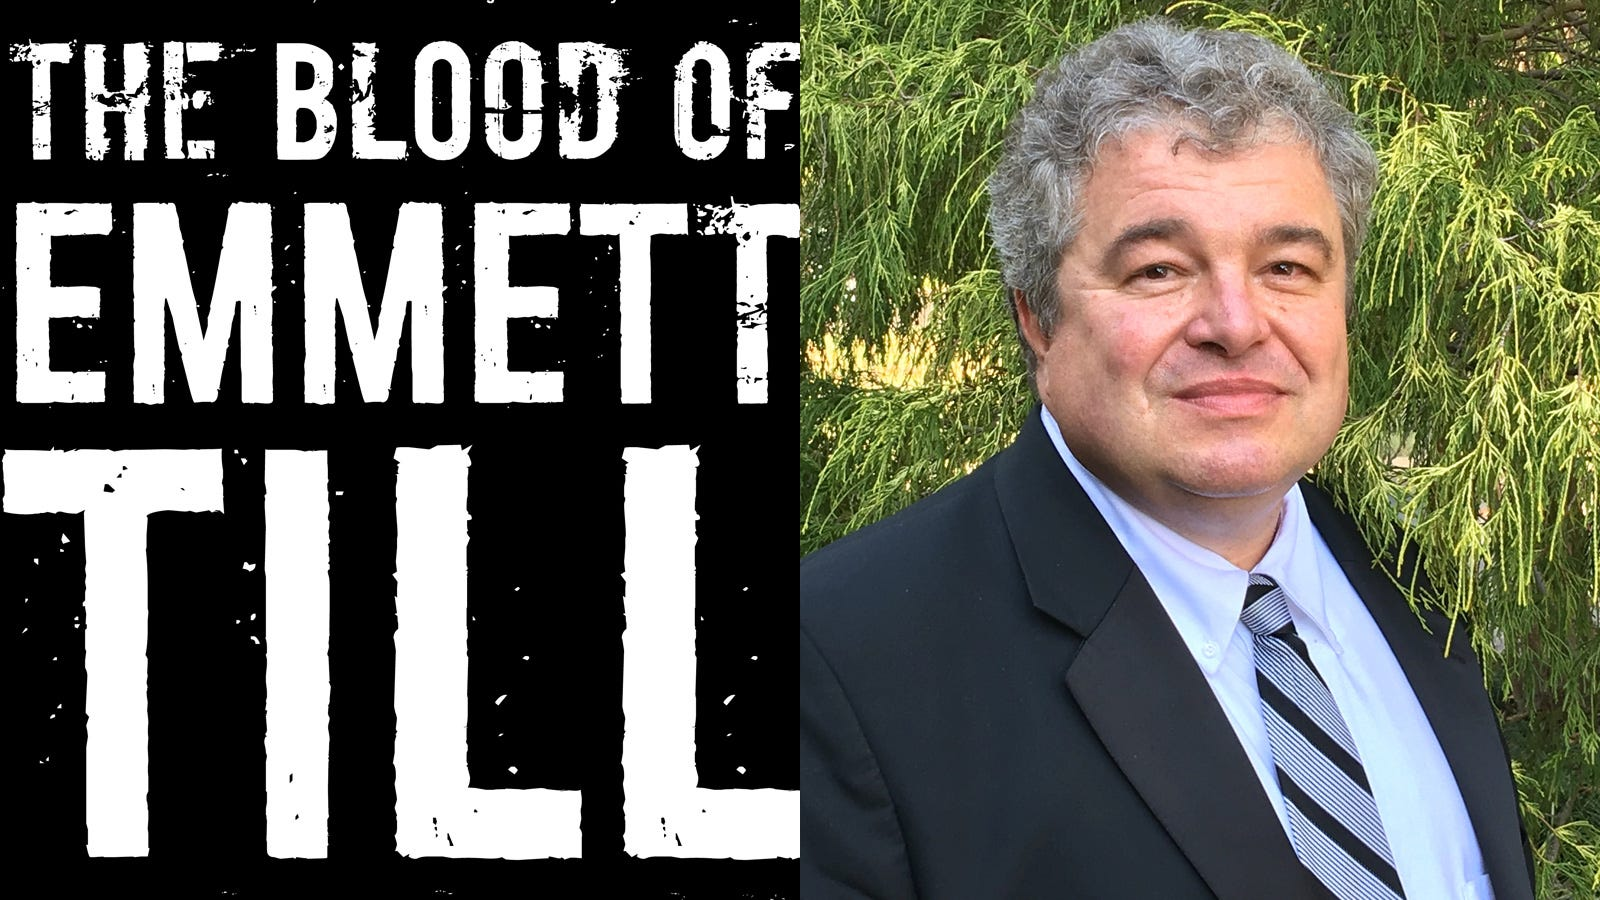 the blood of emmett till author talks interviewing till s accuser the blood of emmett till author talks interviewing till s accuser and being published alongside milo yiannopoulos